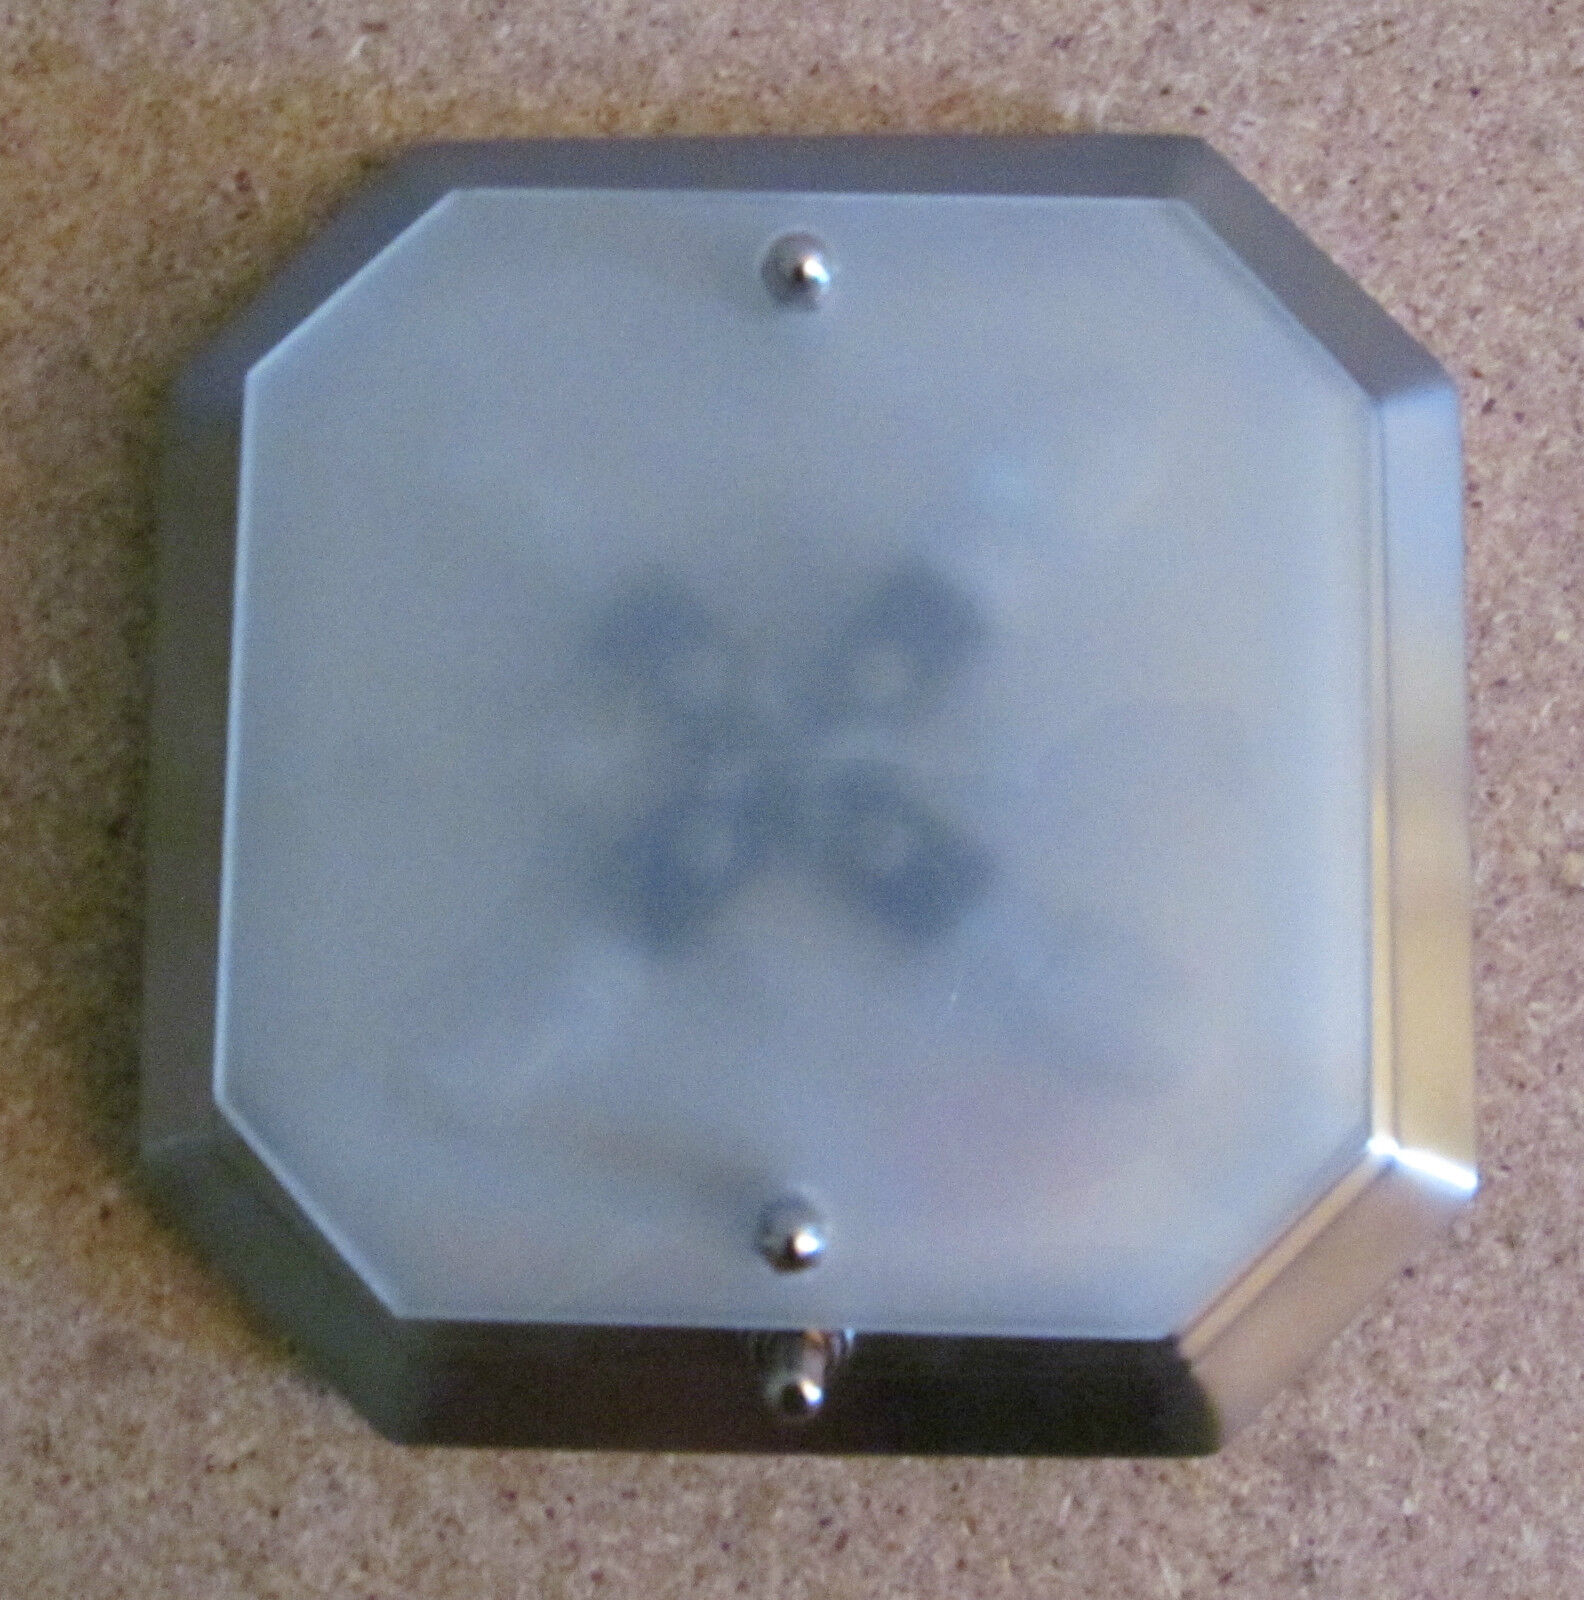 RV, Trailer & Camper Parts Boat RV 12 Volt Nickel Ceiling\/Wall\/Cabinet Light Frosted Swirl Glass